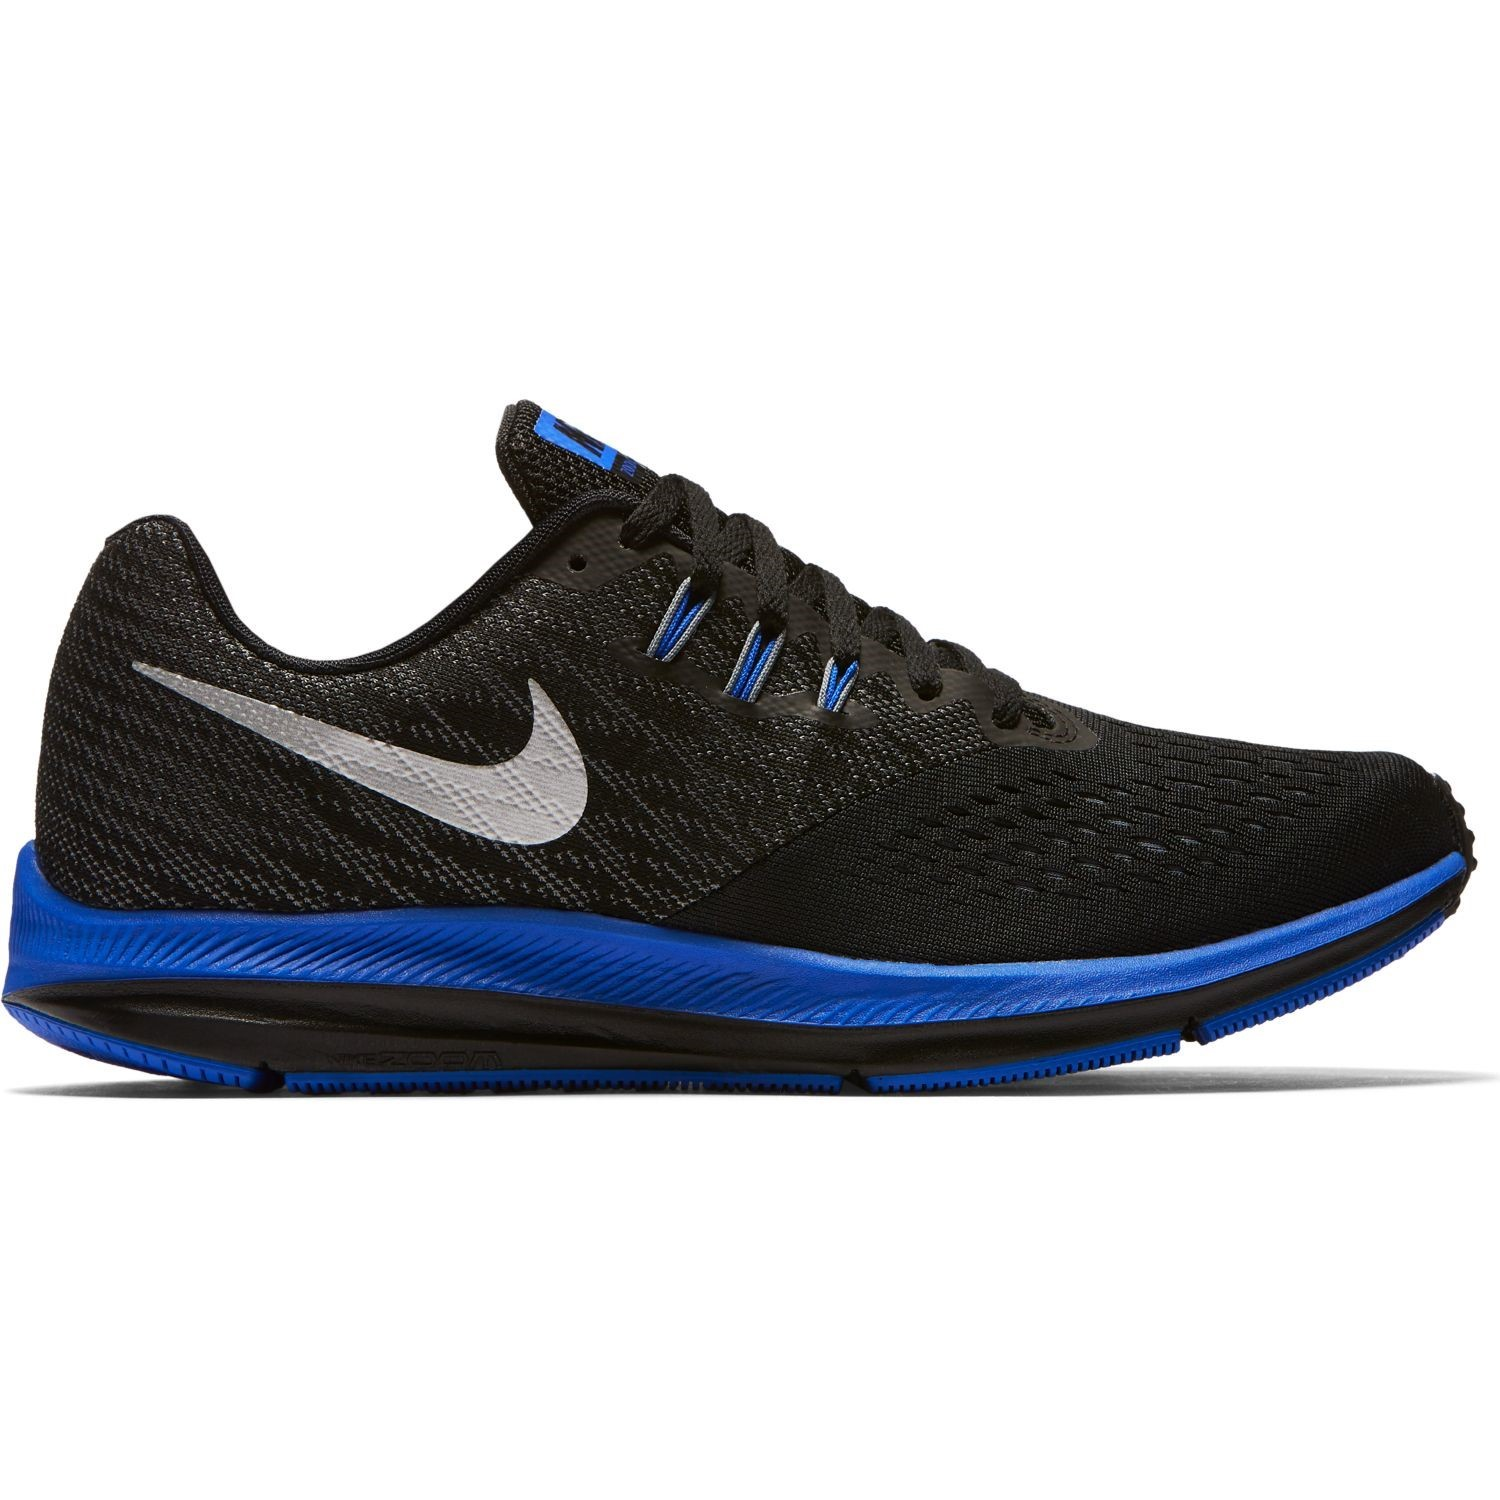 be9fe58e3226b Nike Zoom Winflo 4 - Mens Running Shoes - Black Metallic Silver Cool Grey